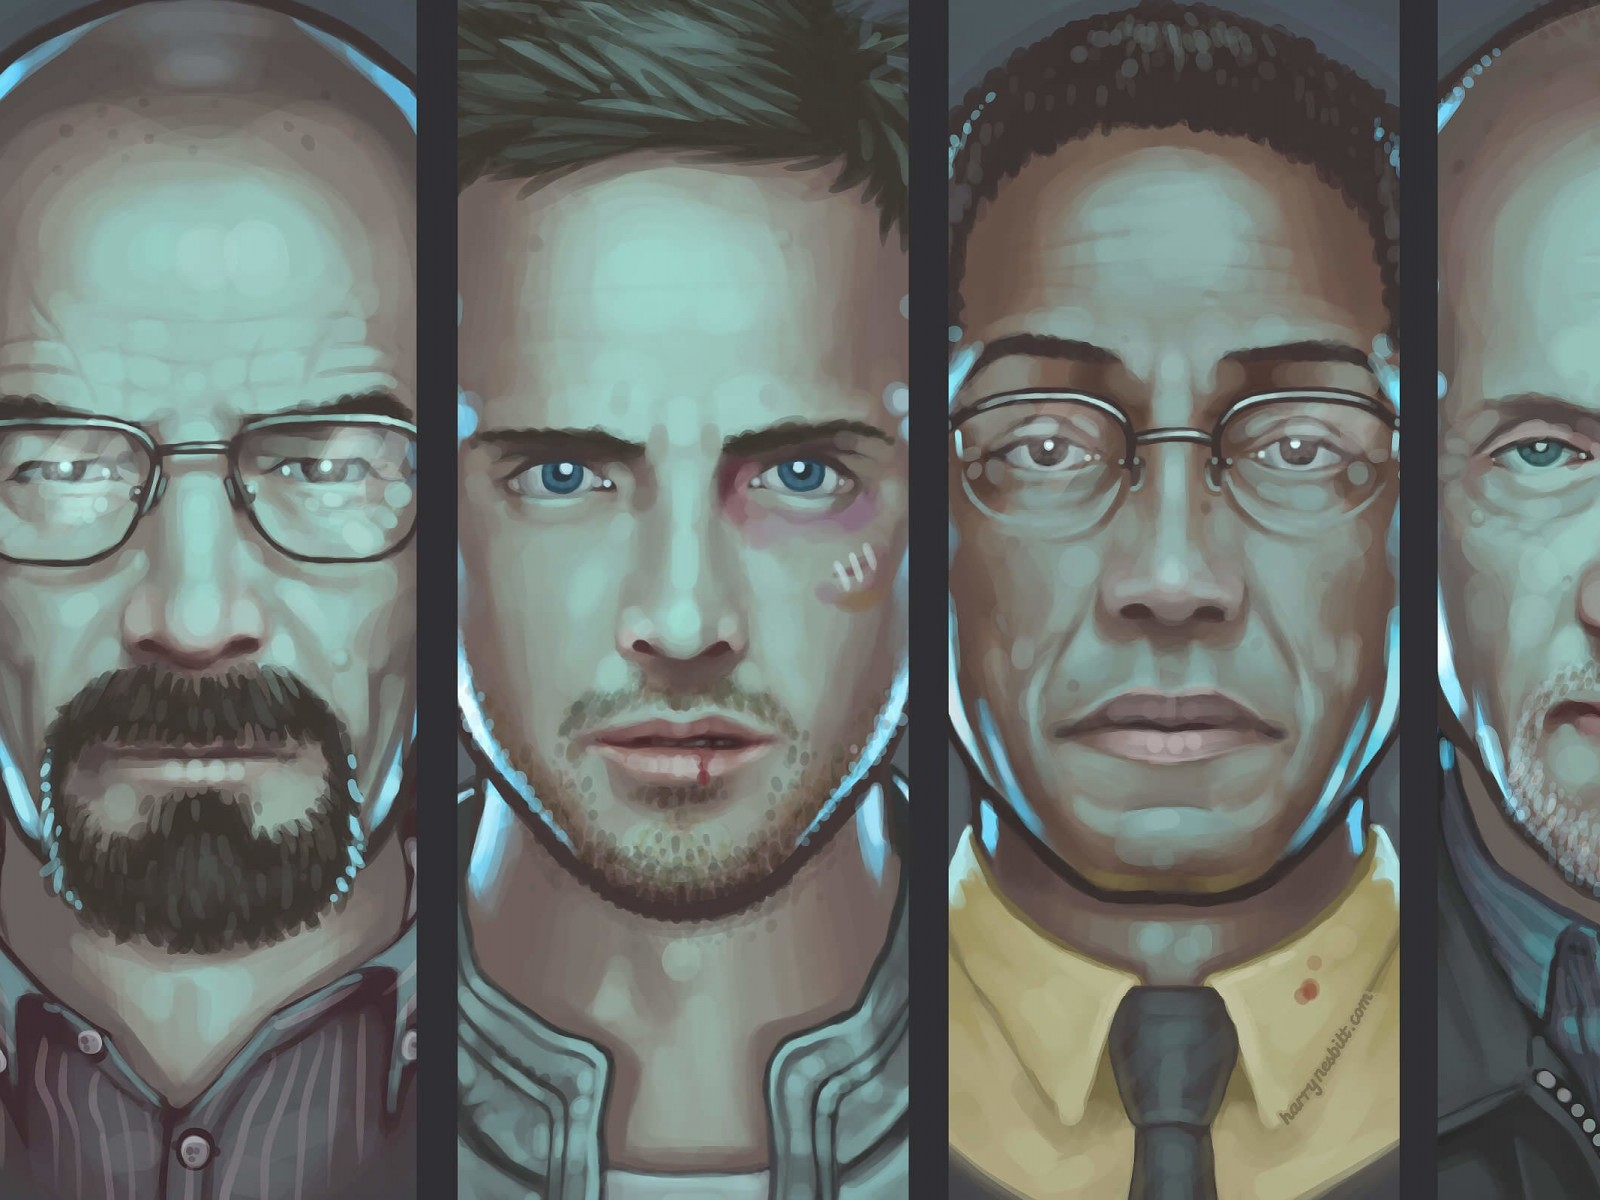 Breaking Bad Characters Wallpaper for Desktop 1600x1200